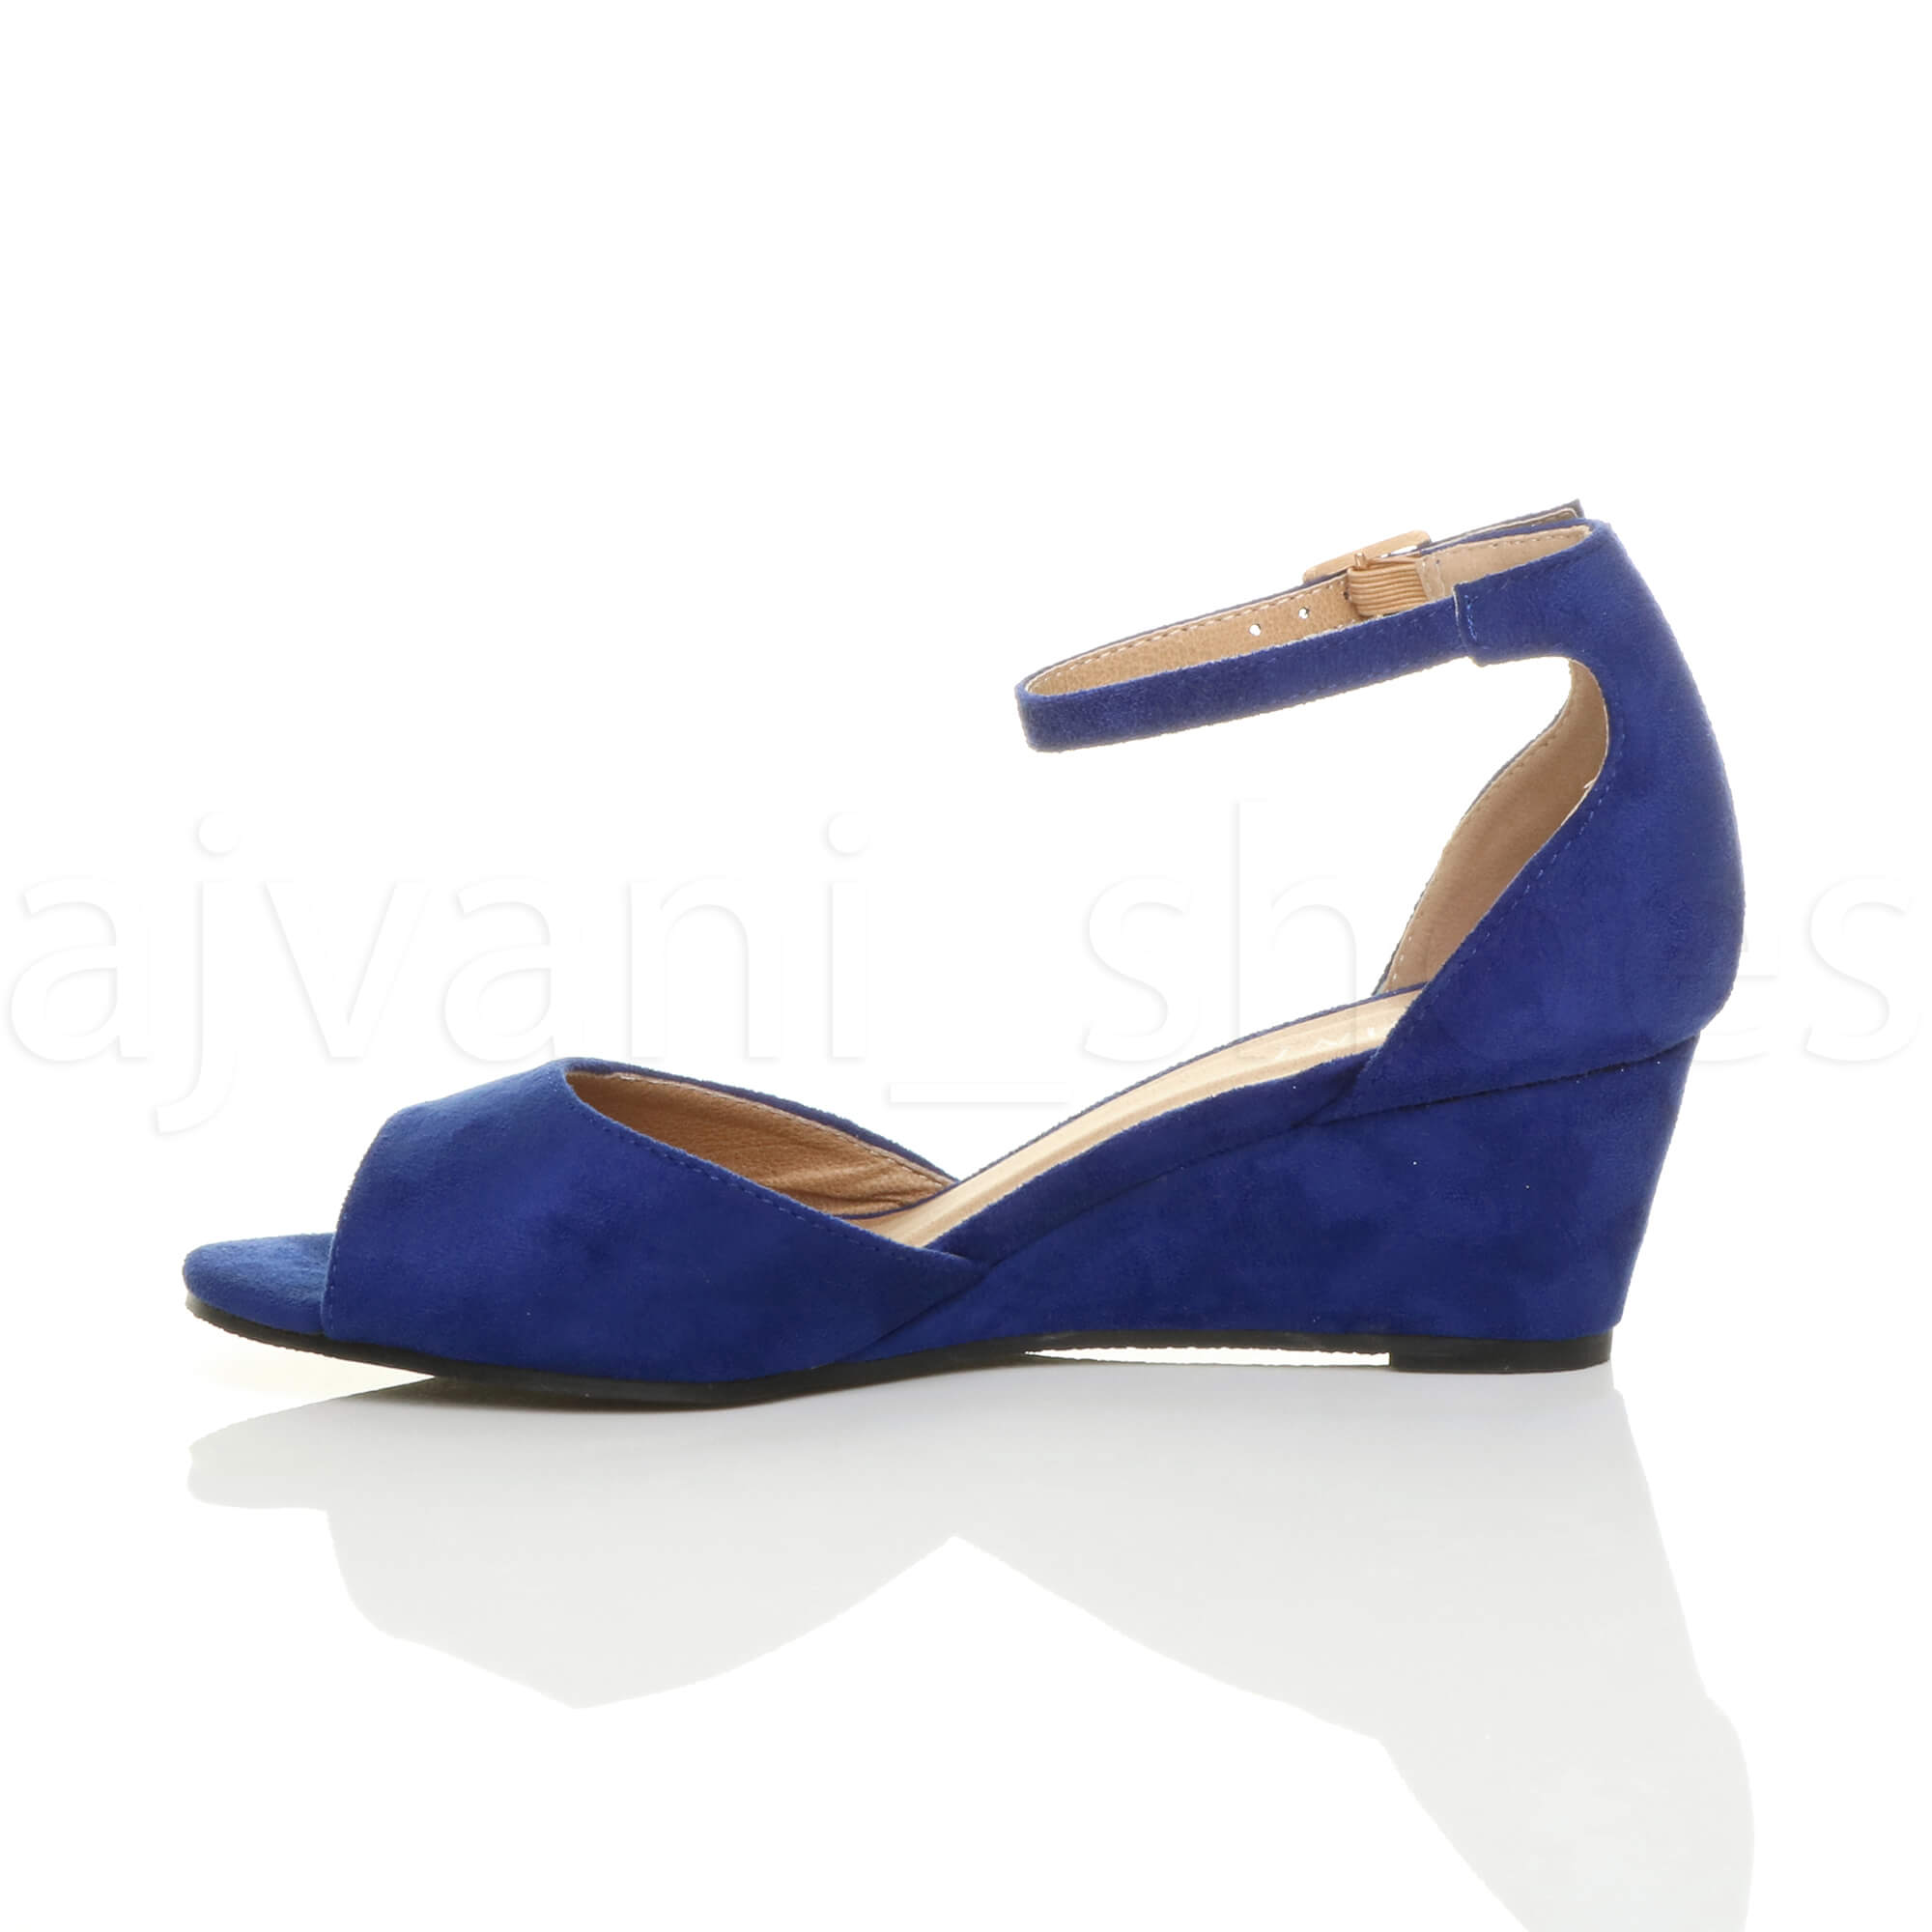 WOMENS-LADIES-LOW-MID-WEDGE-HEEL-ANKLE-STRAP-SMART-CASUAL-EVENING-SANDALS-SIZE thumbnail 28